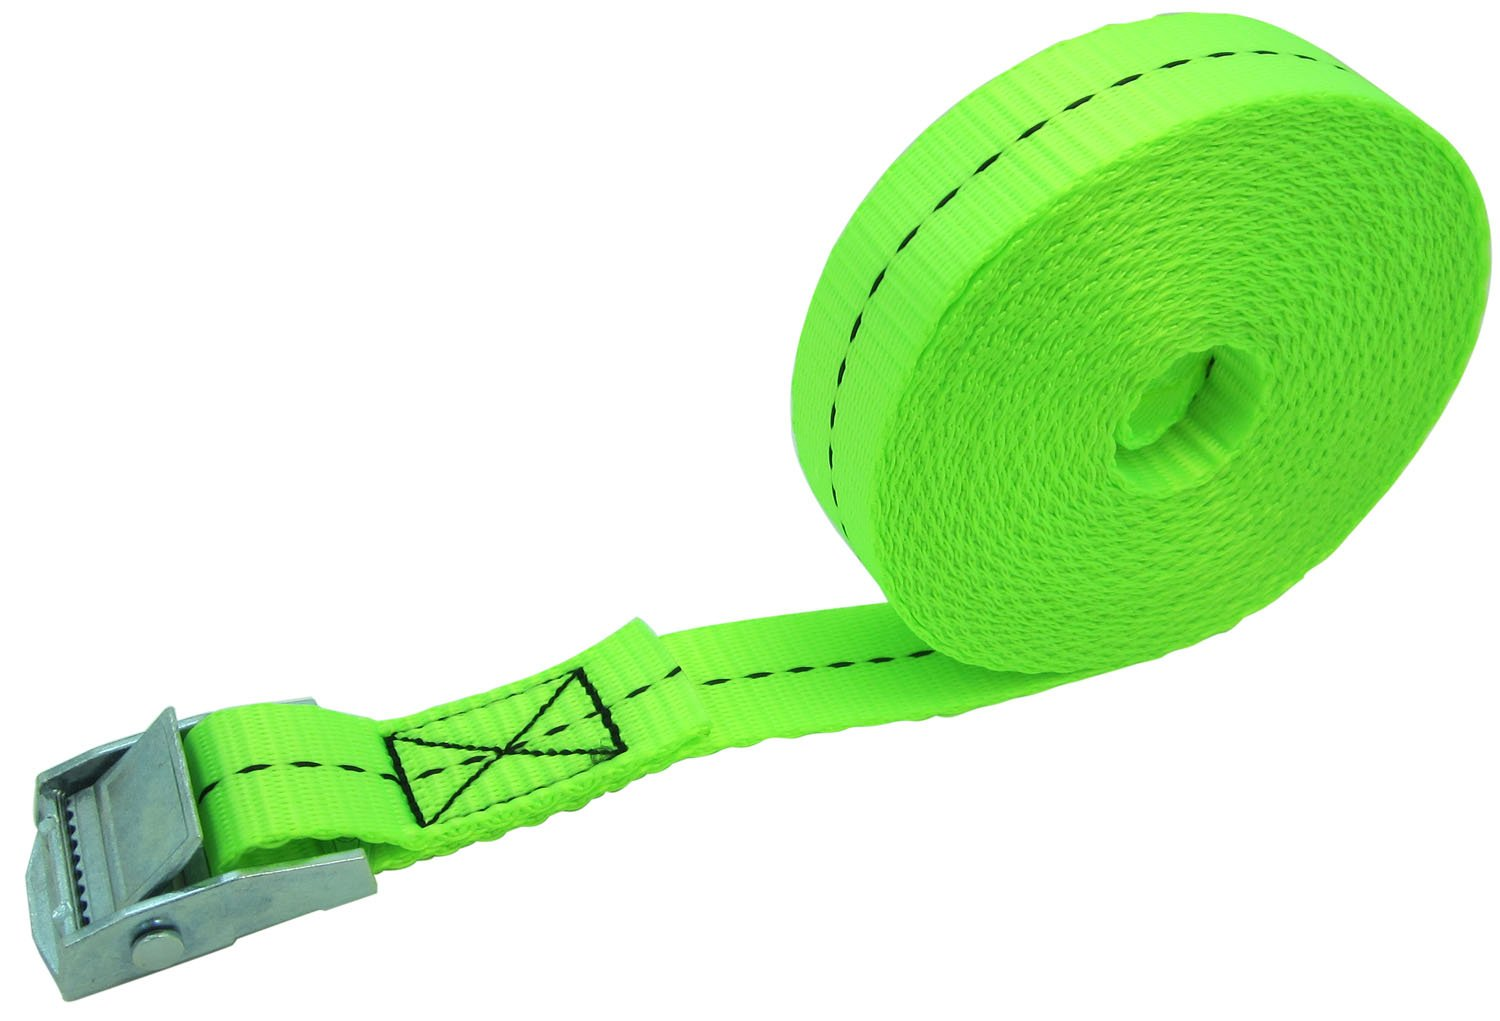 Light Green WINGONEER® WINGONEER 1in Wide x 16ft Long Lashing Straps up to 550lbs 1pcs